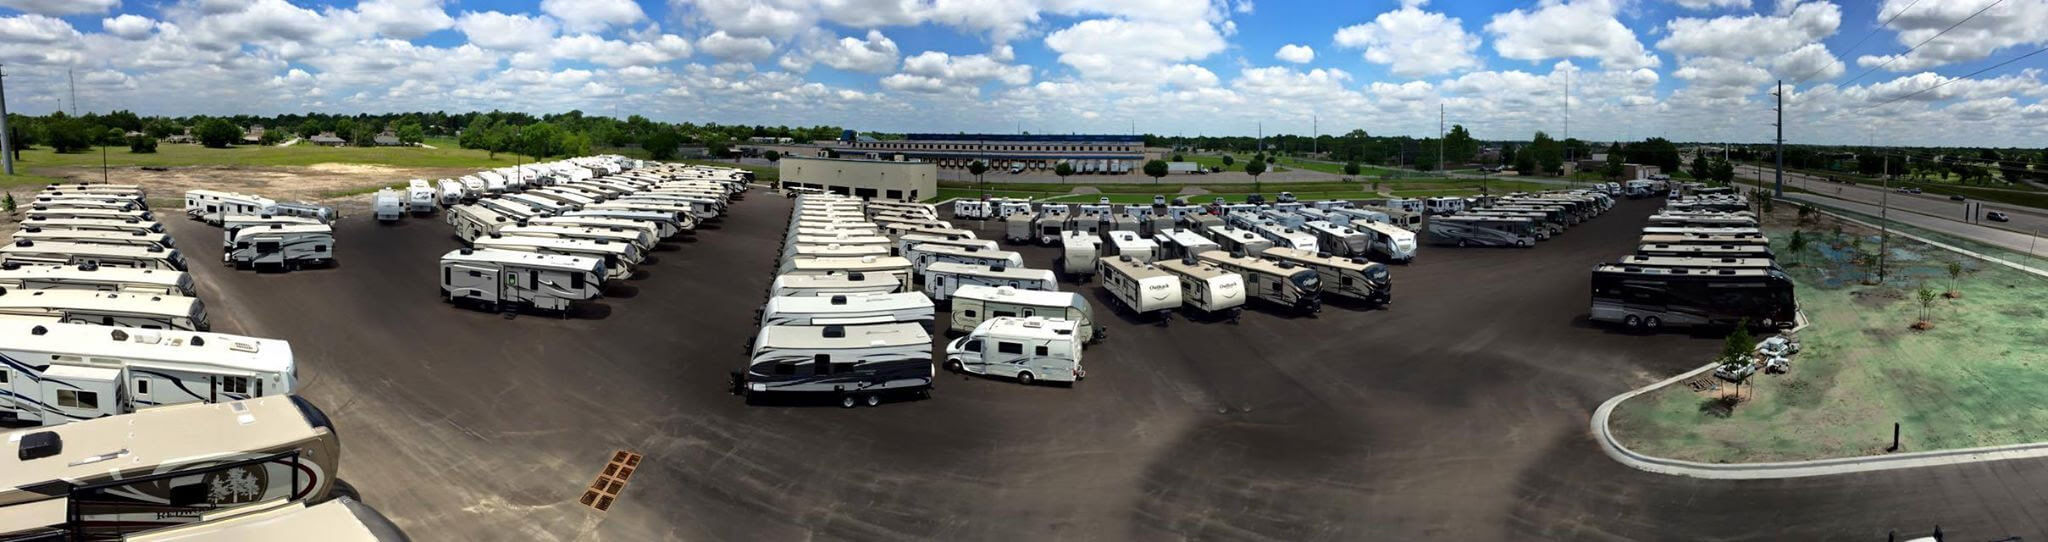 Dean's RV SuperStore - Oklahoma RV Dealer